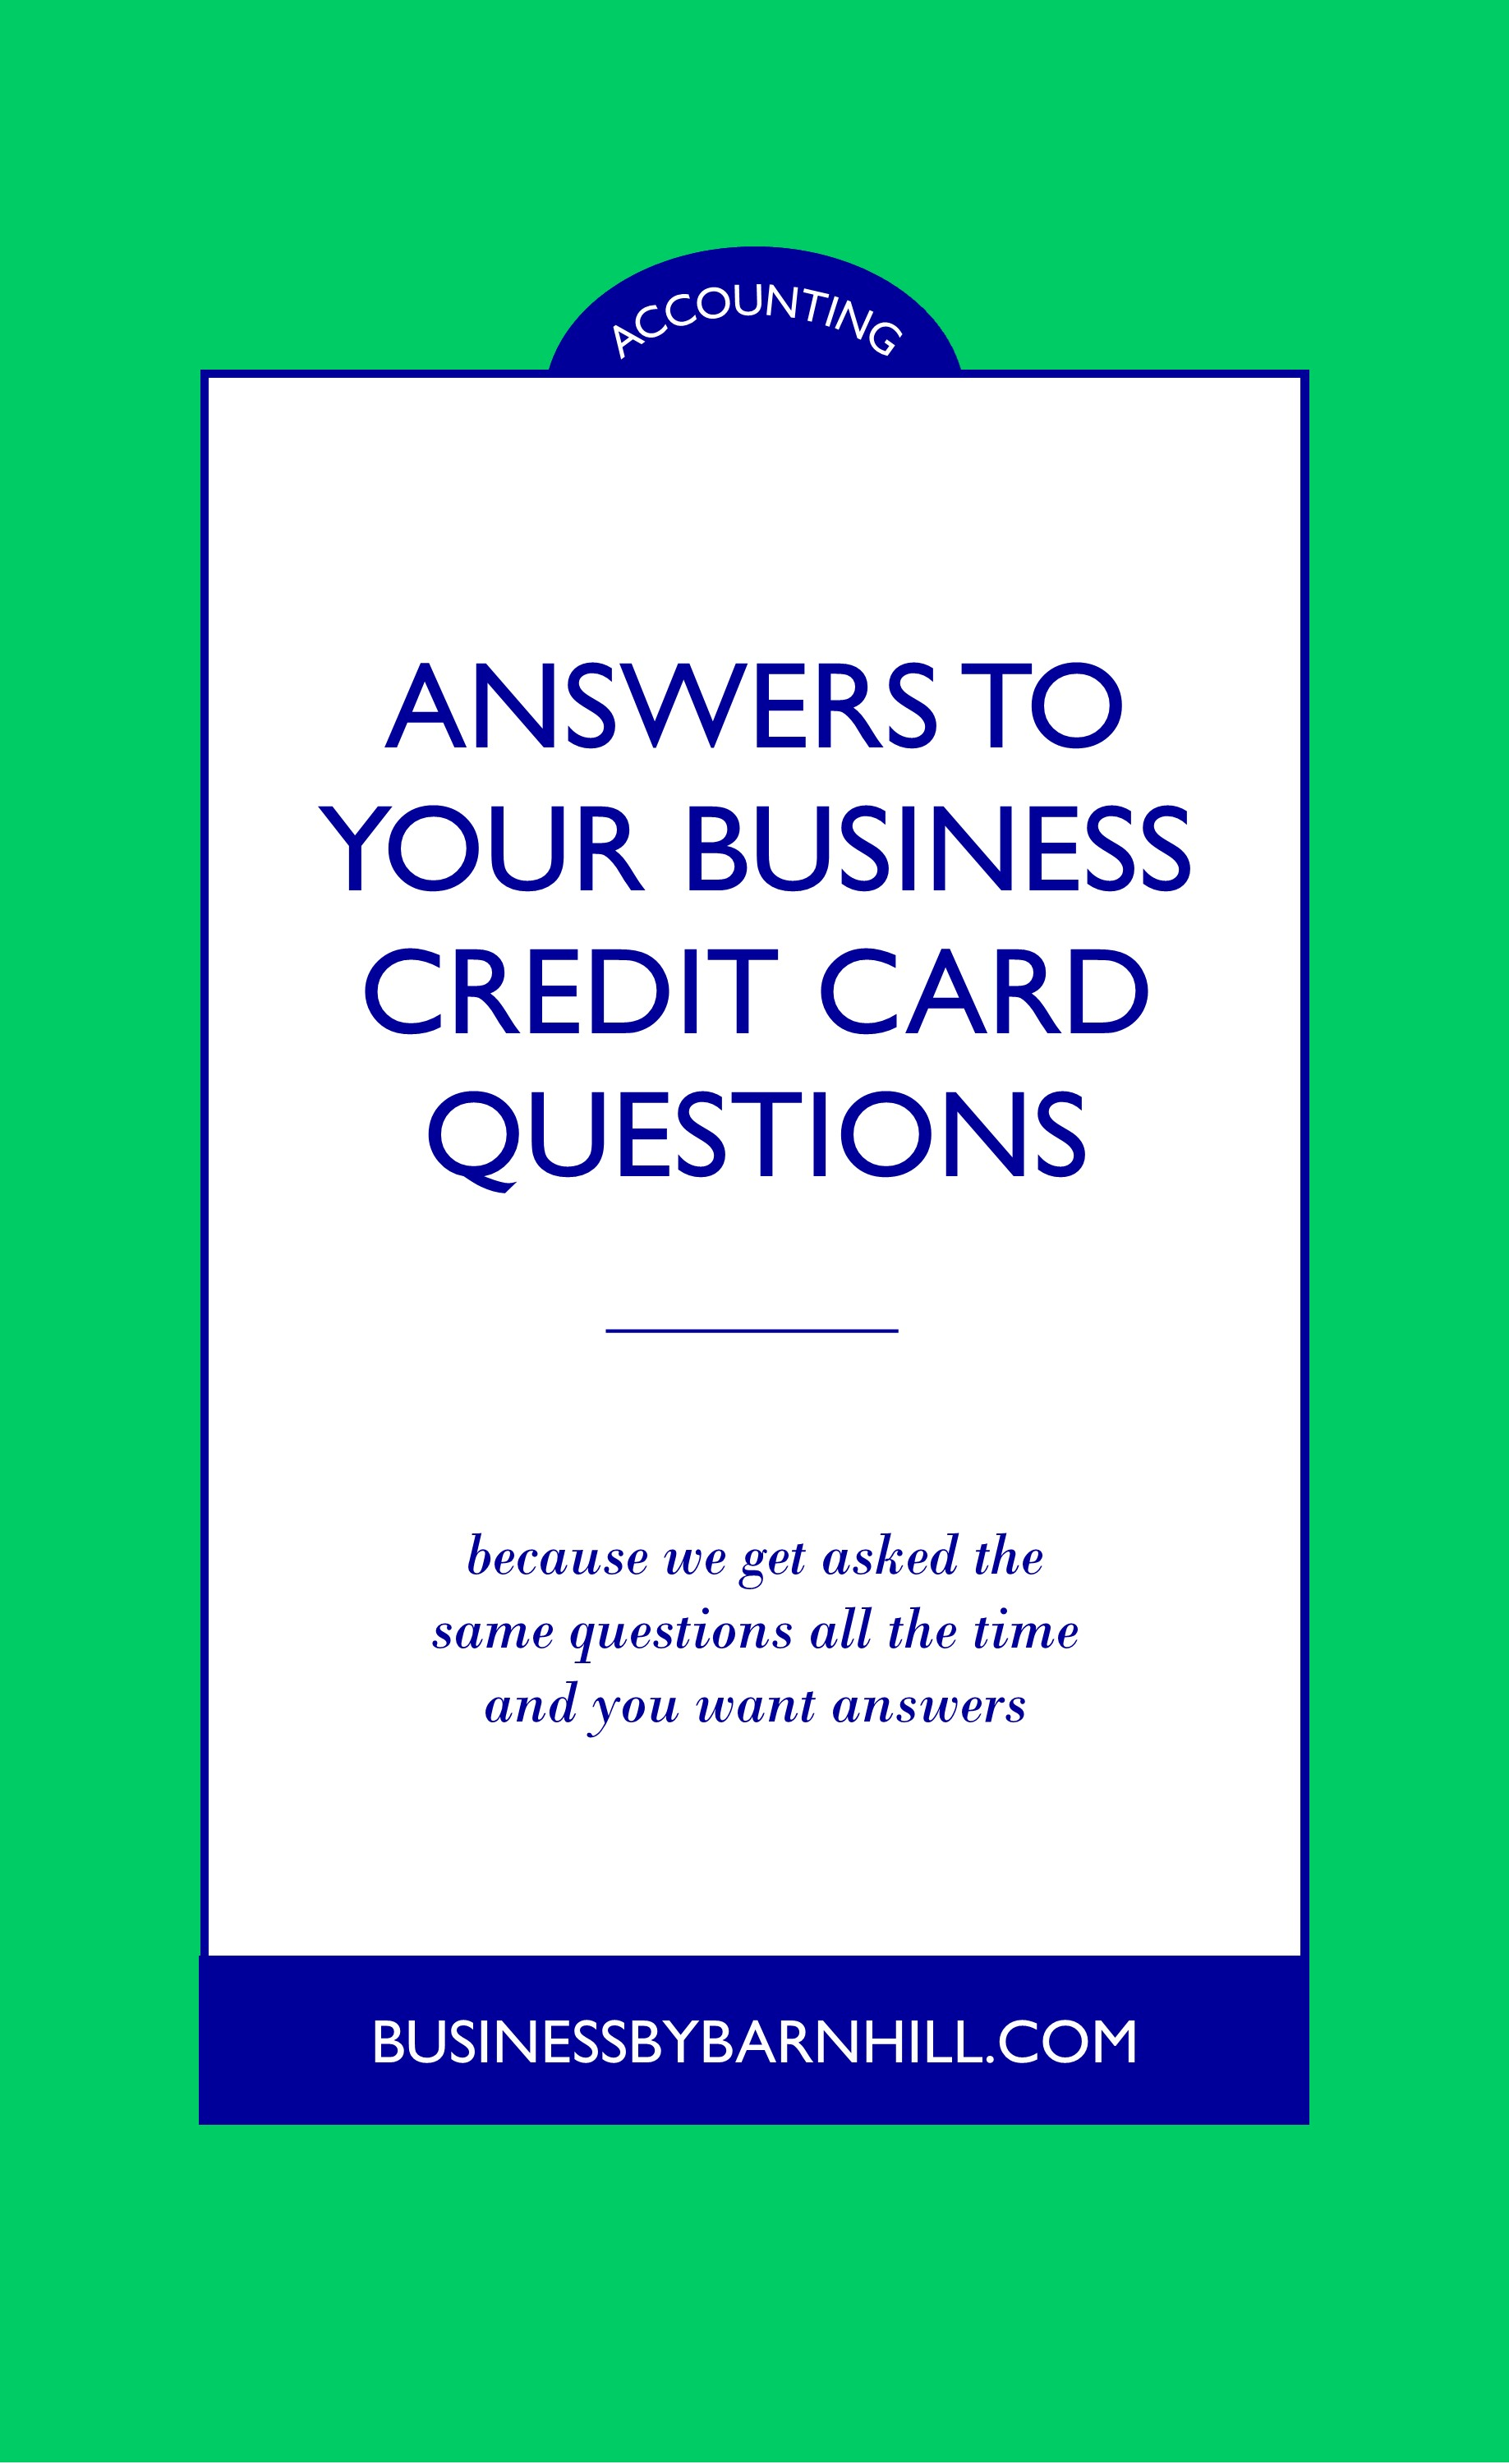 business by barnhill pinterest answers to your business credit card questions 2.jpg